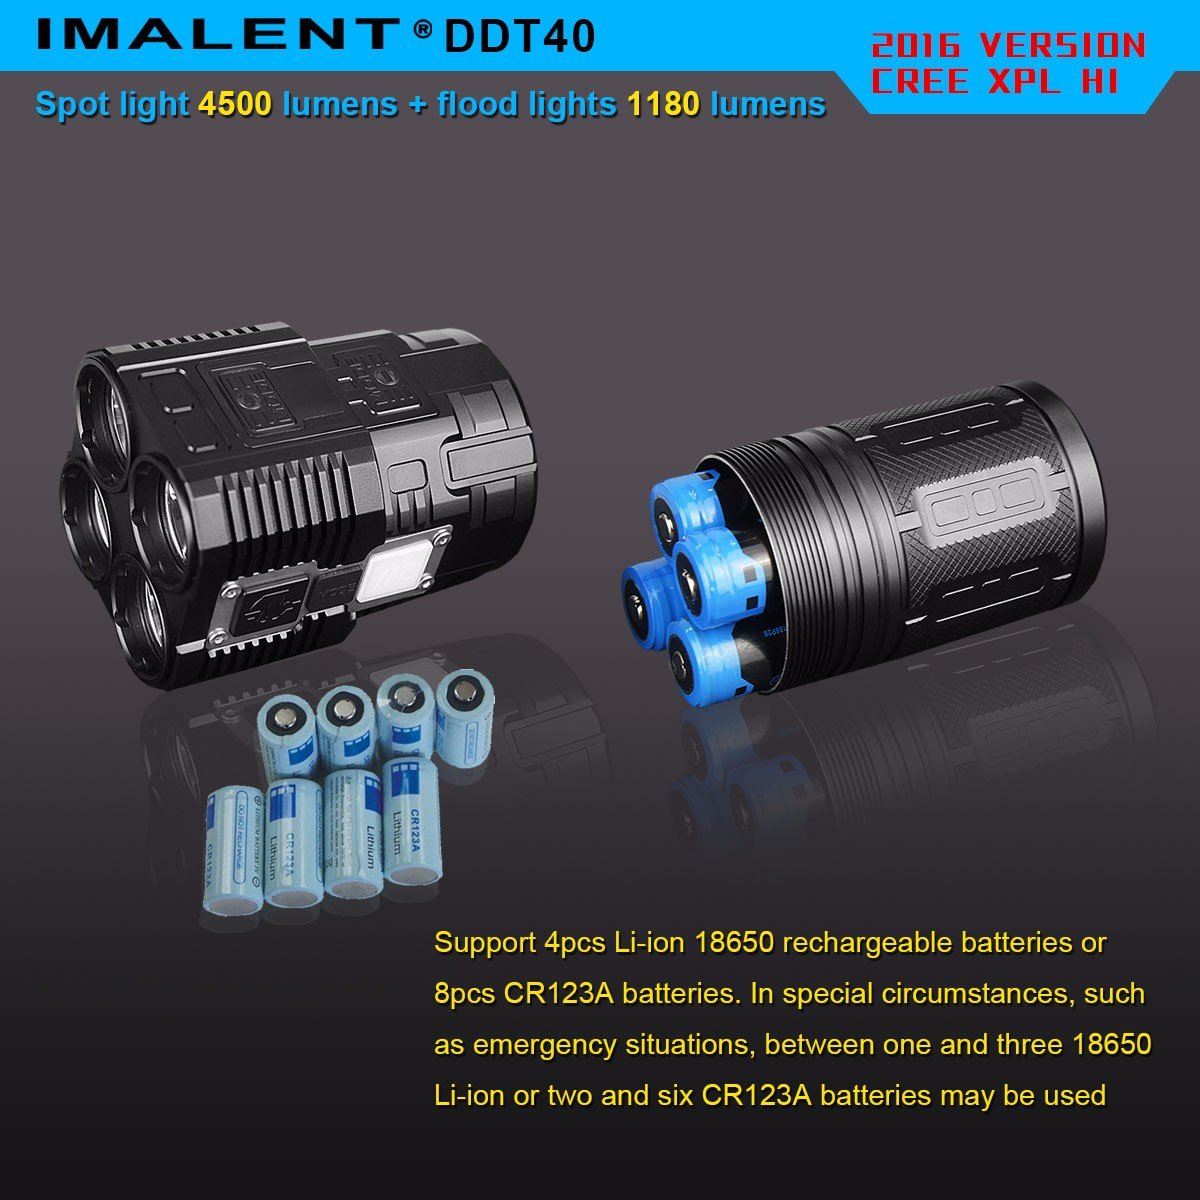 IMALENT DDT40 4500 Lumens +1180 Lumens Handheld LED Flashlight Powered Tactical Flashlight for Camping Hiking (The item can be delivered within 10 days) by IMALENT (Image #4)